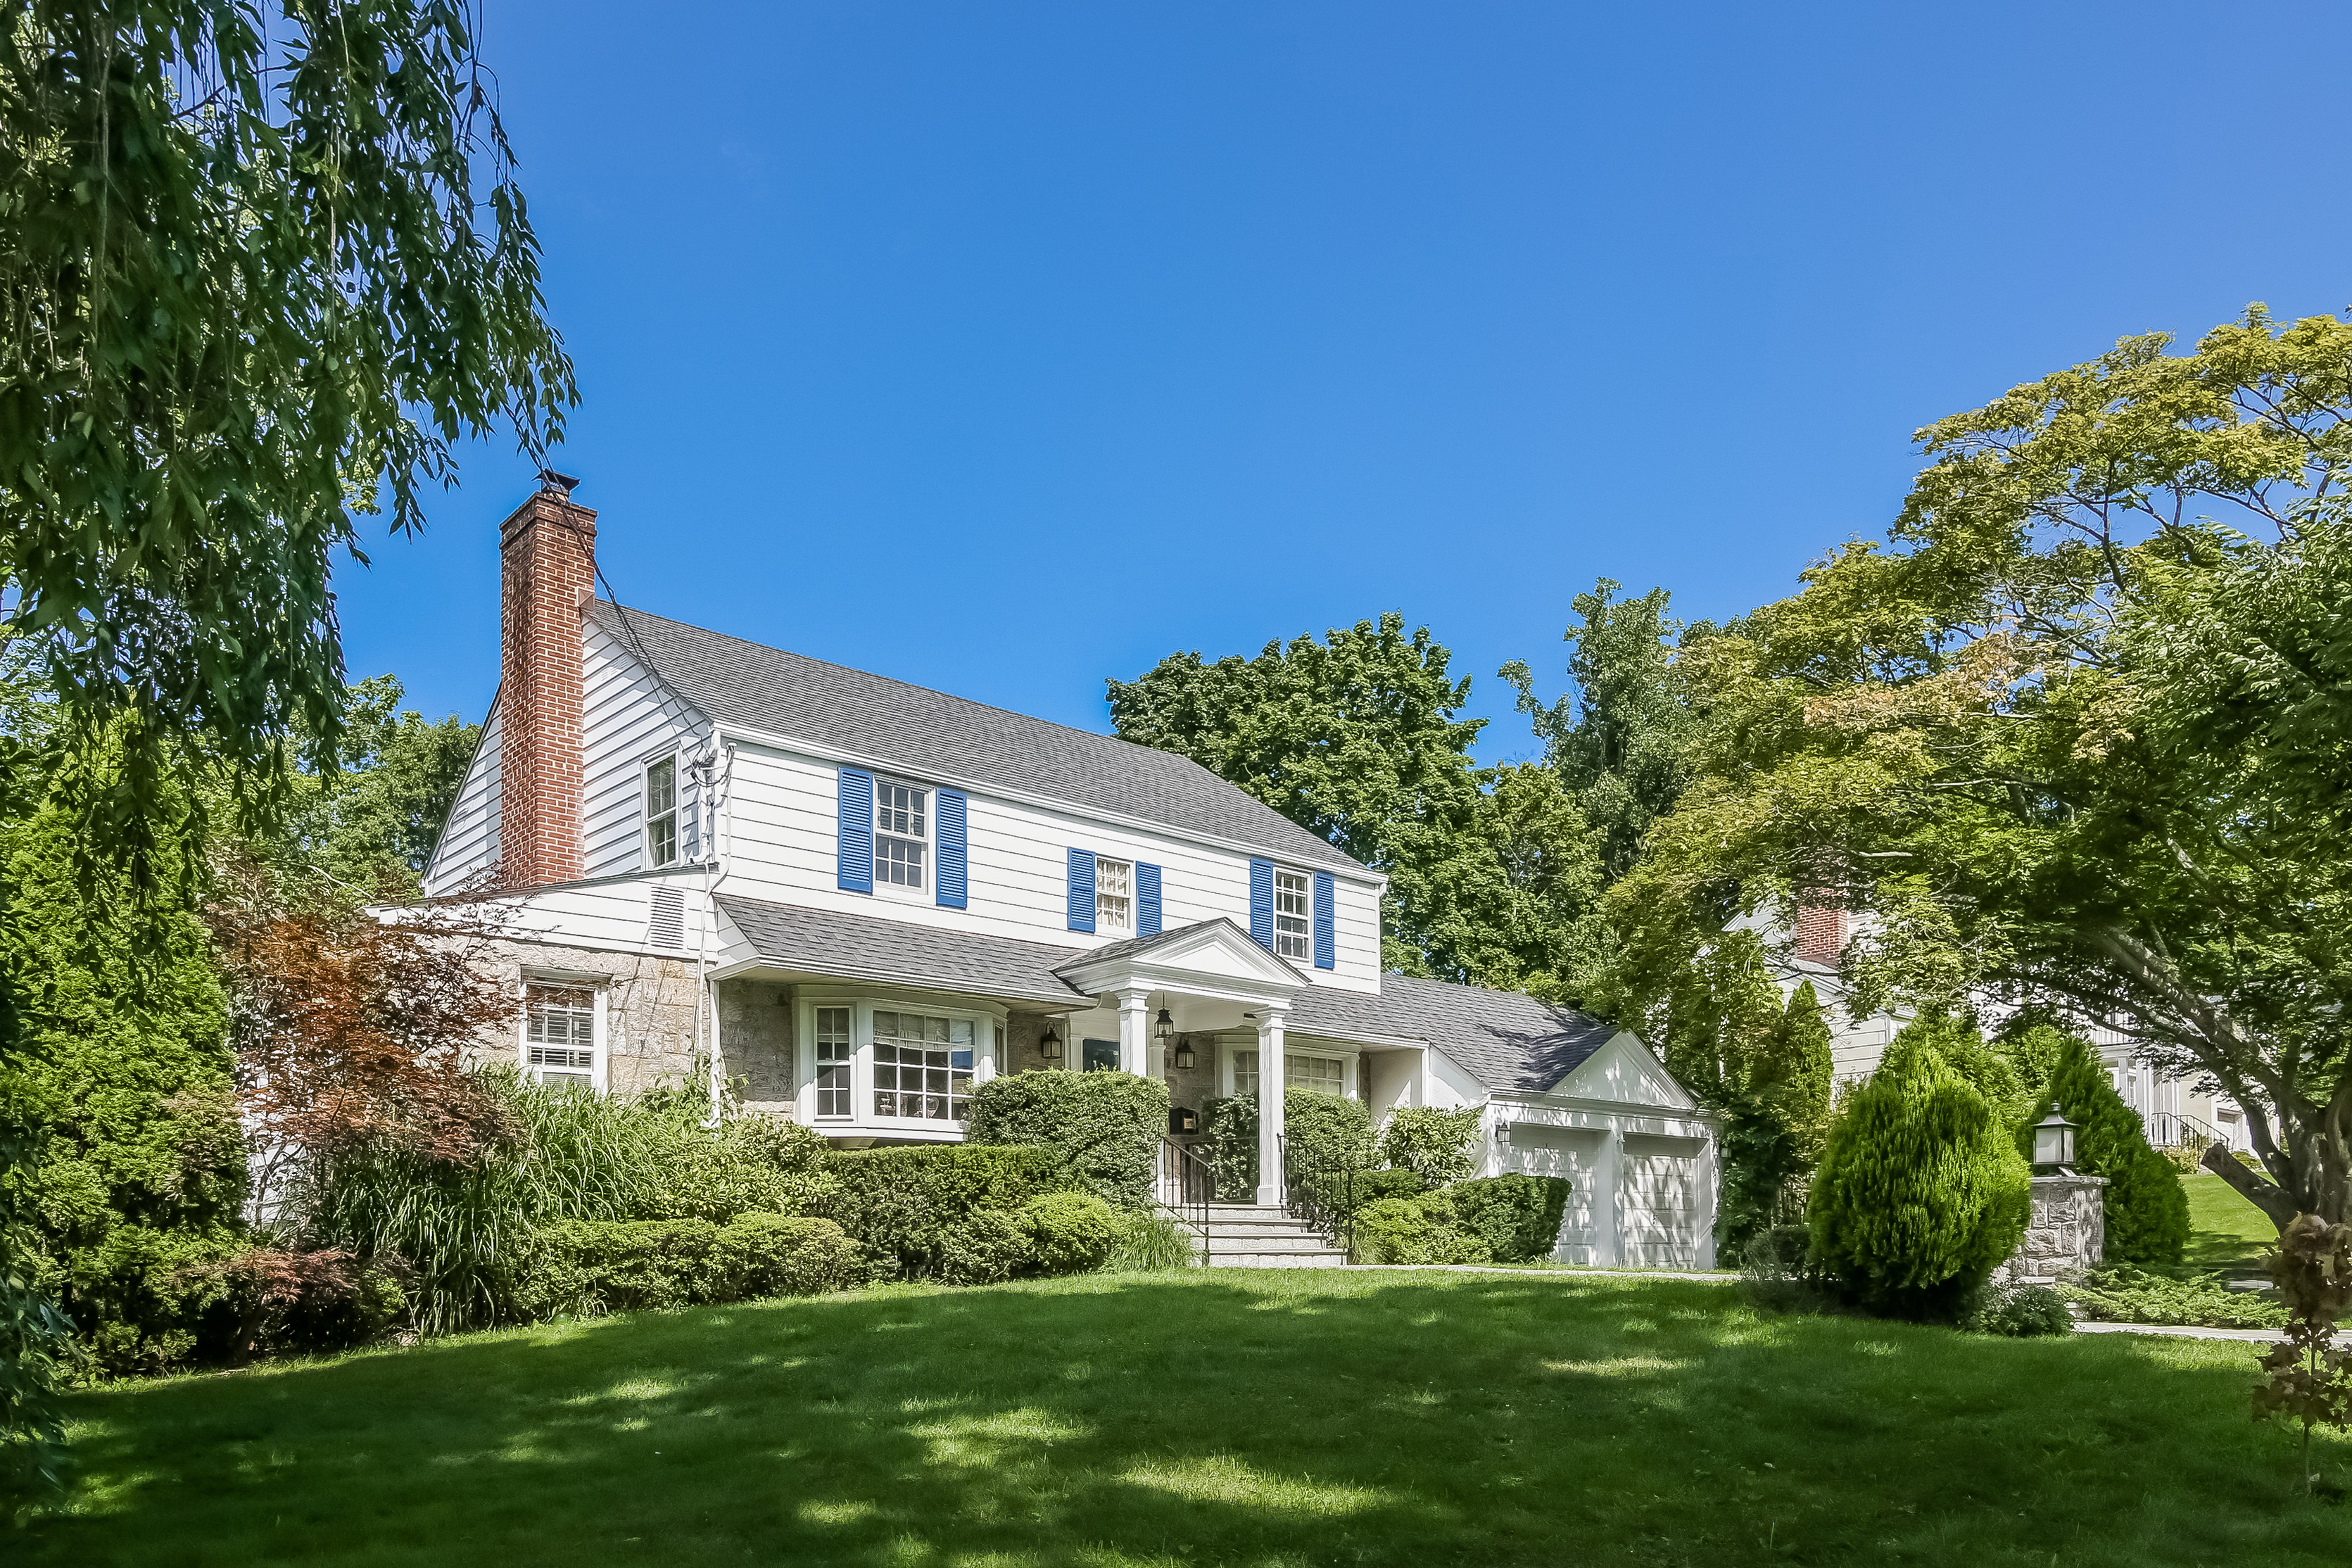 Single Family Home for Sale at Charming Colonial 196 Ferndale Road Scarsdale, New York, 10583 United States